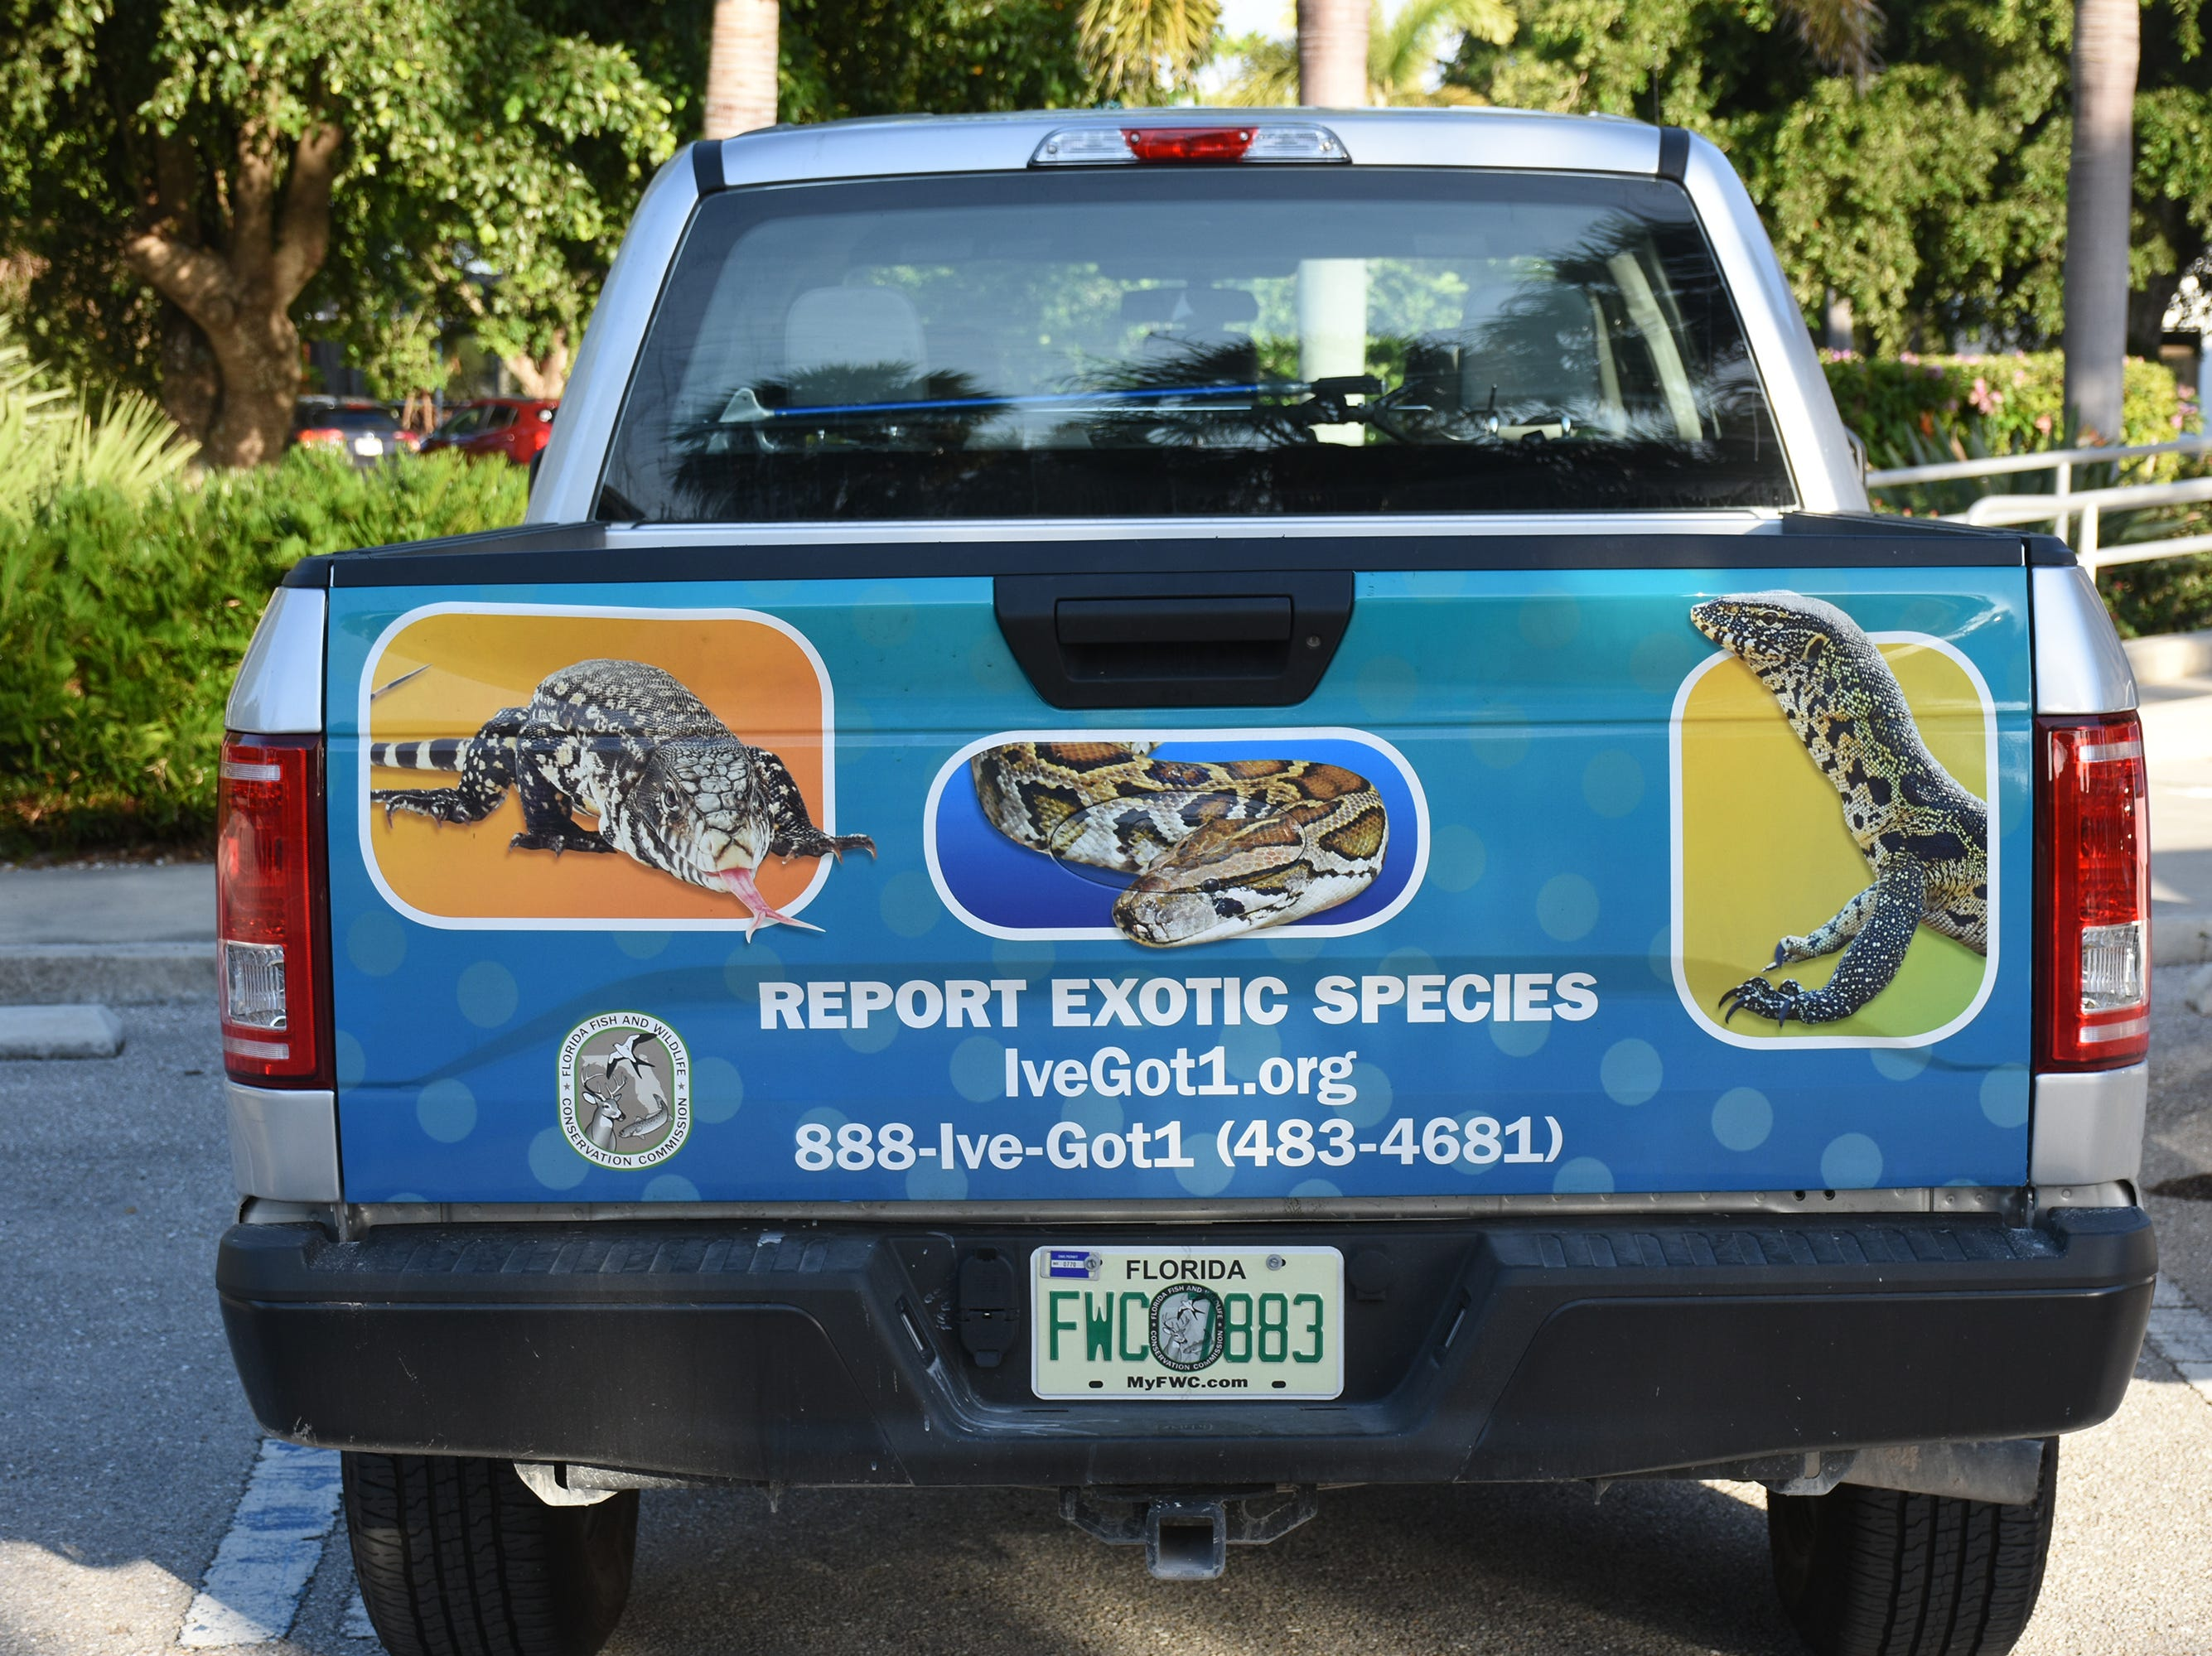 An FWC vehicle tells how to report exotic species. The City of Marco Island hosted a presentation on invasive iguanas conducted by the Florida Fish and Wildlife Conservation Commission on Wednesday evening in the Biles Community Room.